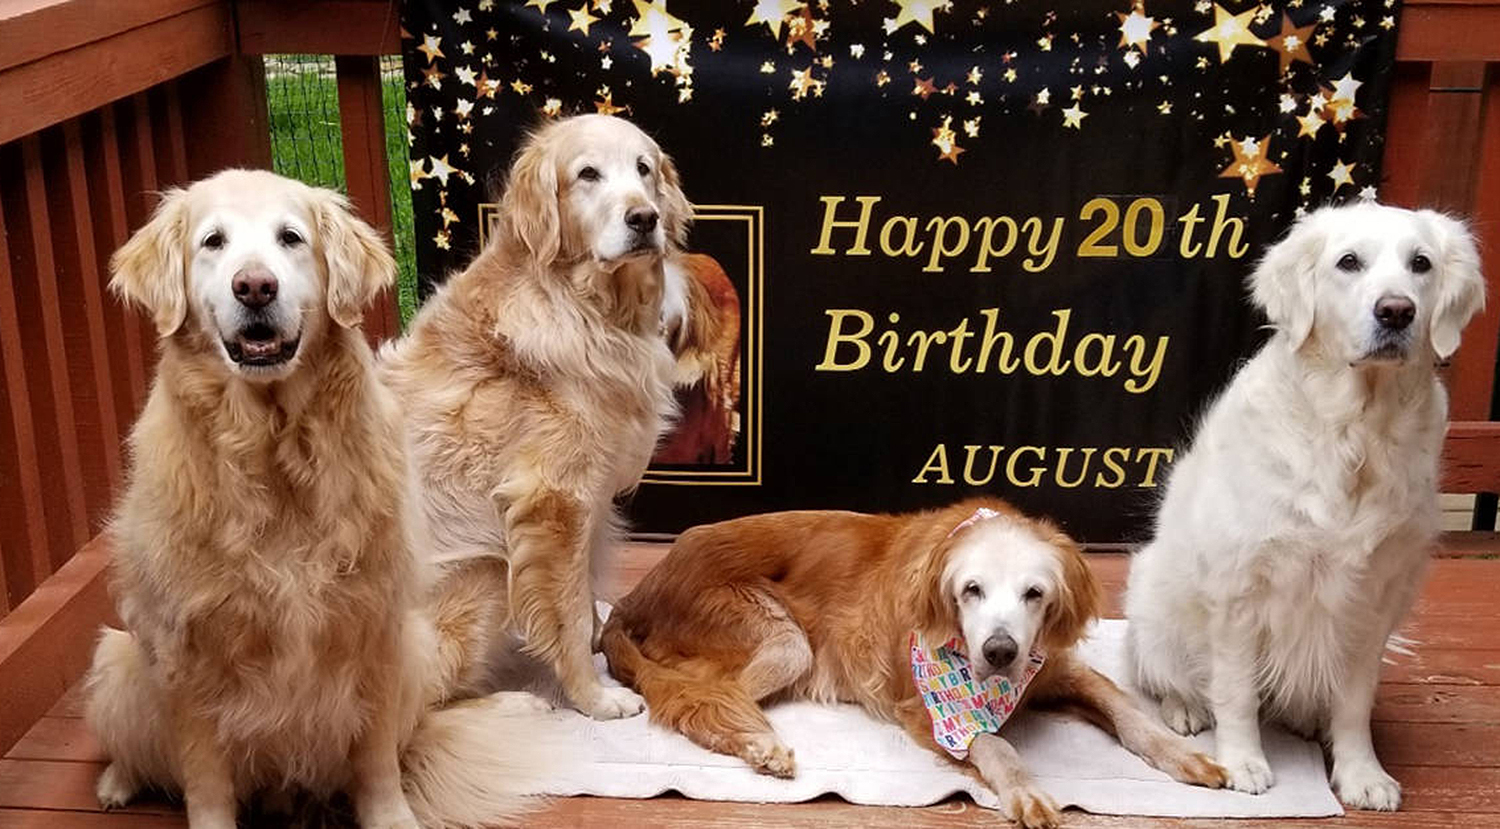 Augie the dog celebrating 20th birthday with friends